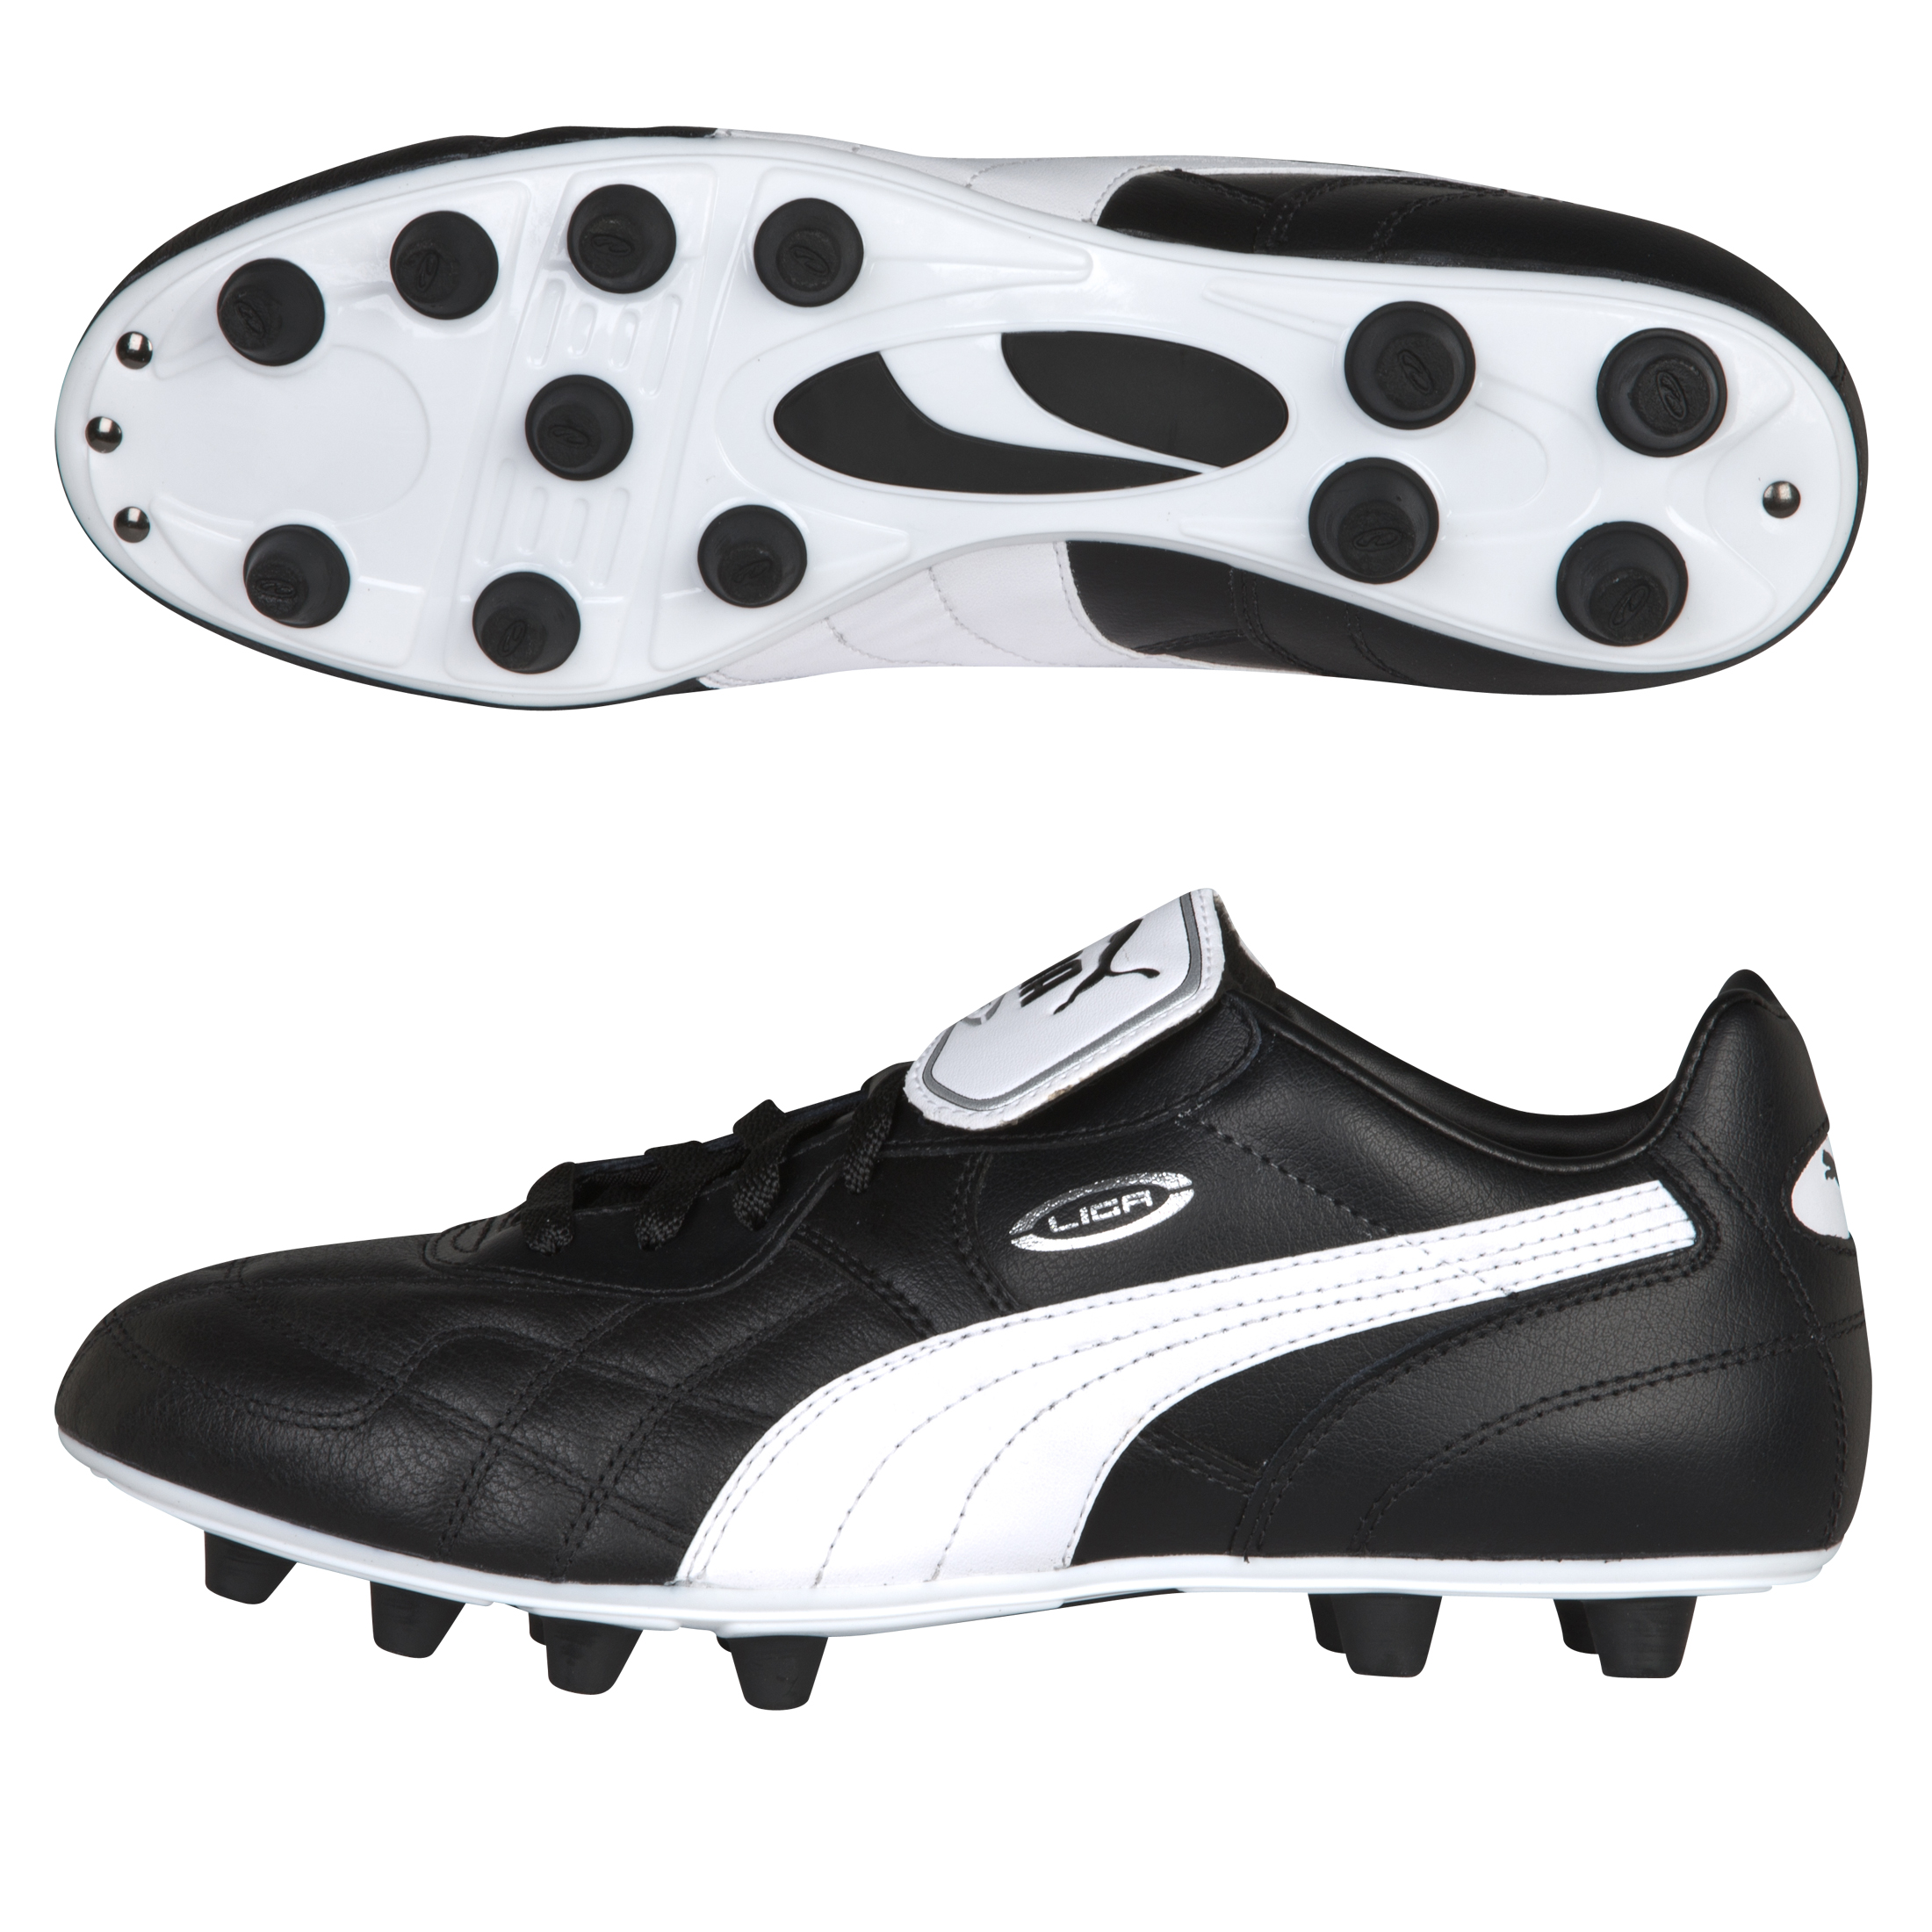 Puma King Top K Football Boots - Black/White/Team Gold